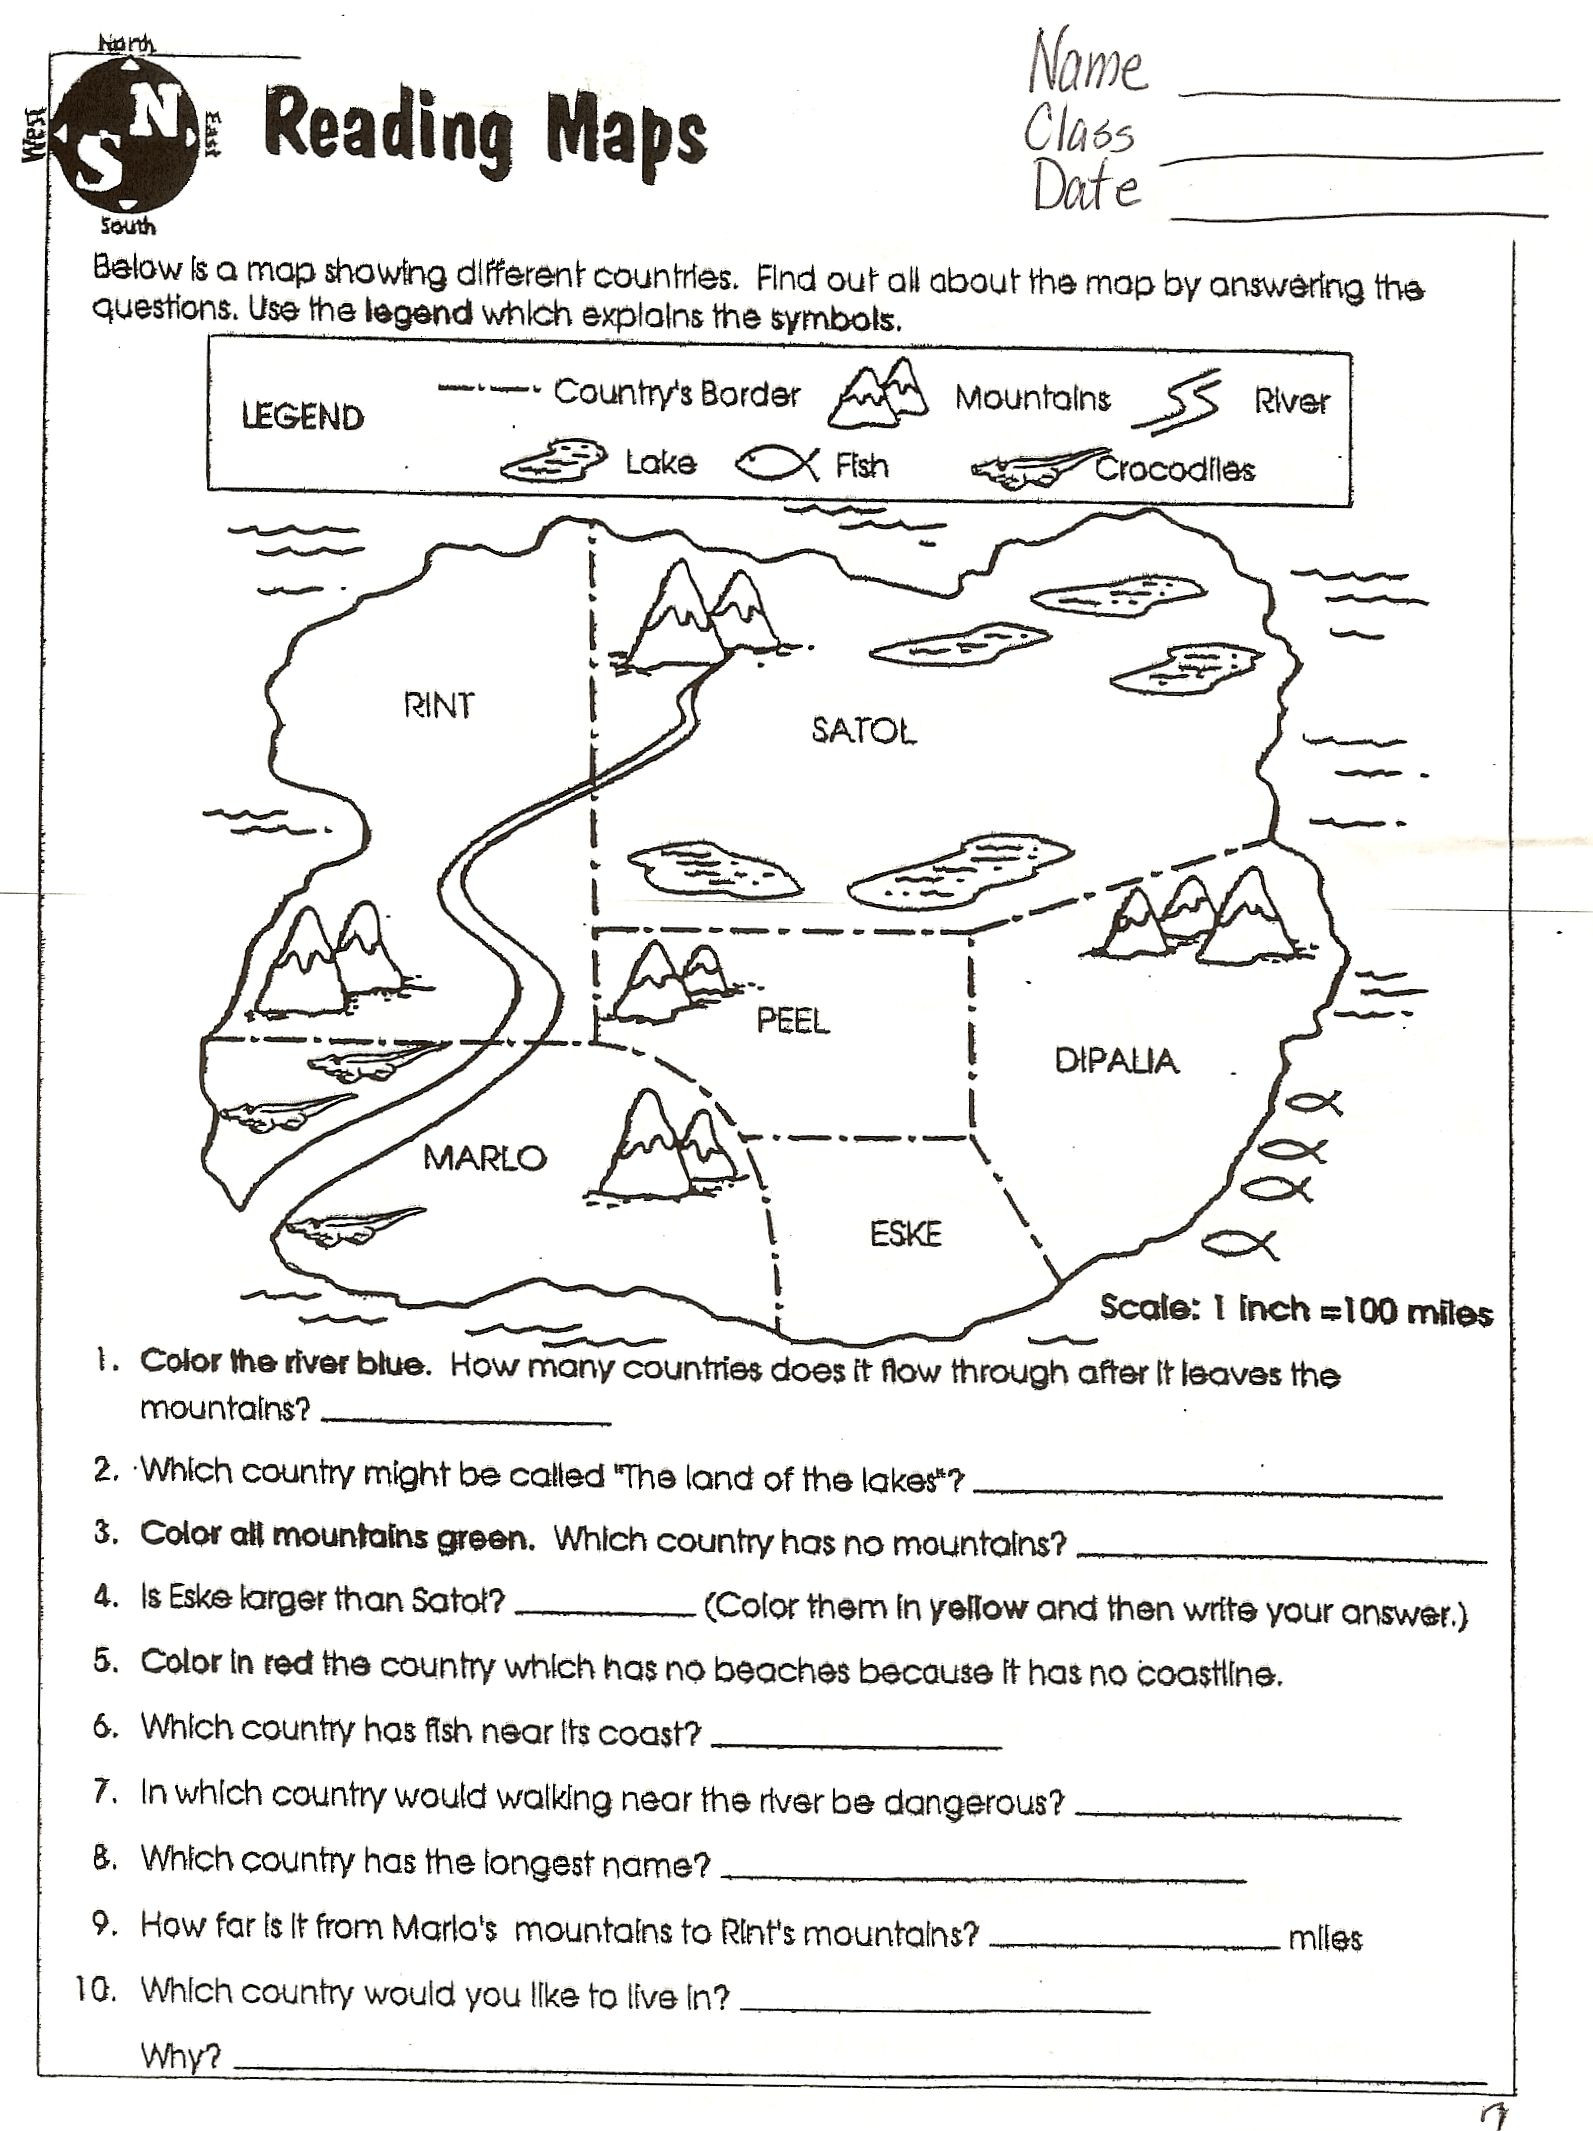 Social Studies Worksheets 6th Grade 4th Grade Worksheets social Stu S